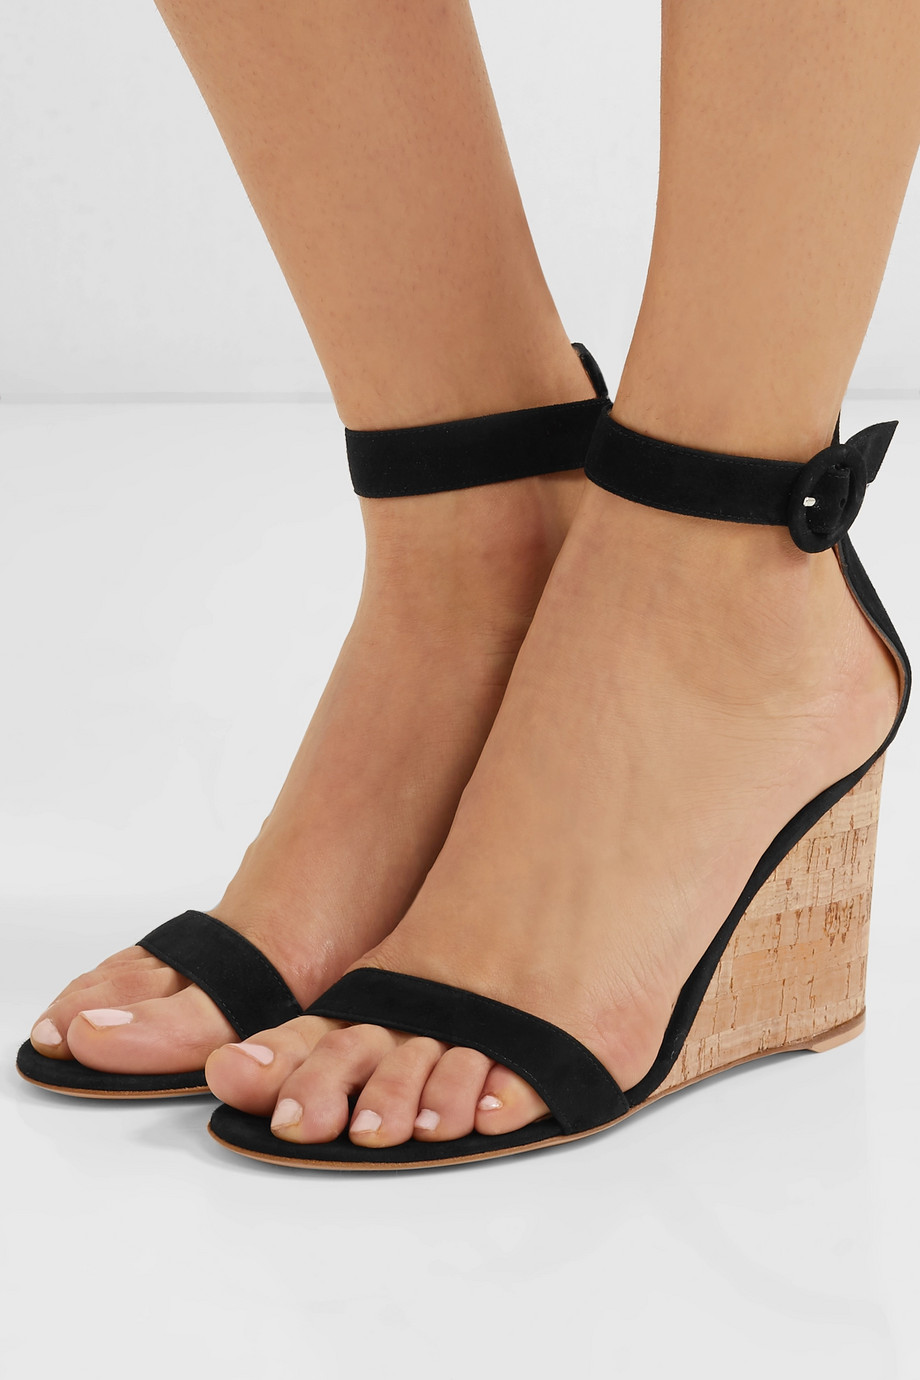 Gianvito Rossi Portofino 85 suede wedge sandals